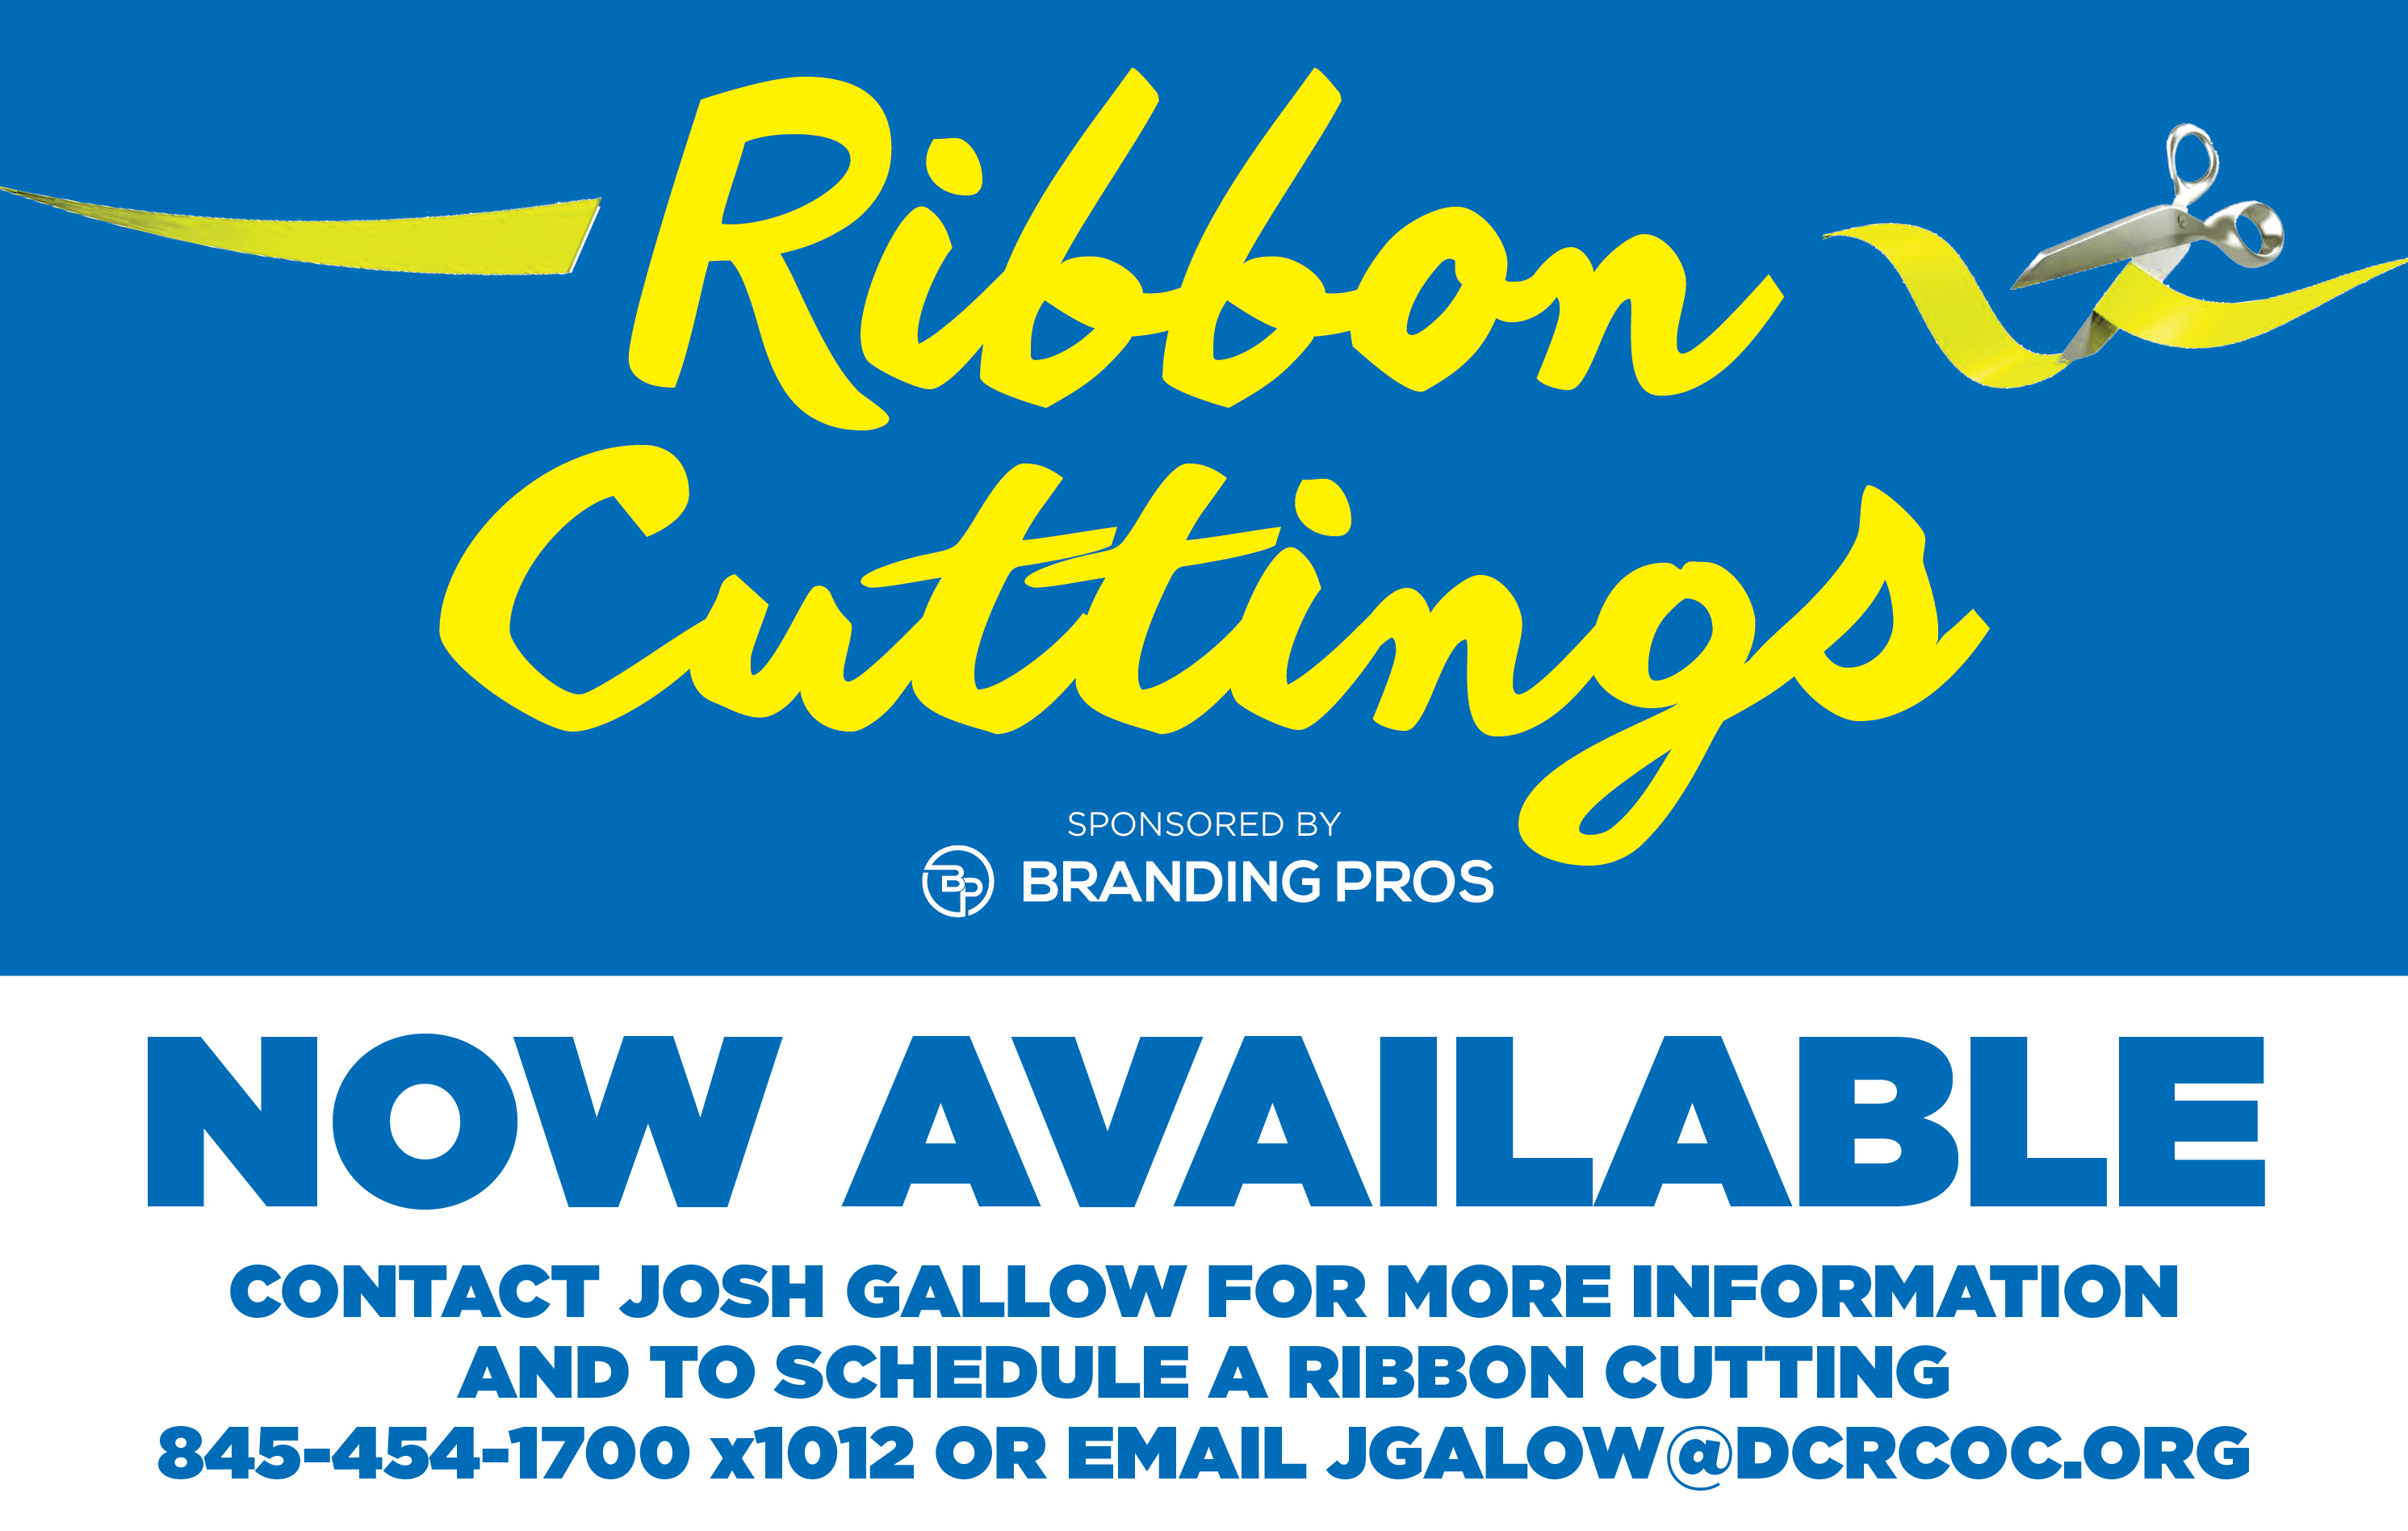 Ribbon-Cuttings-Now-Available(1).jpg